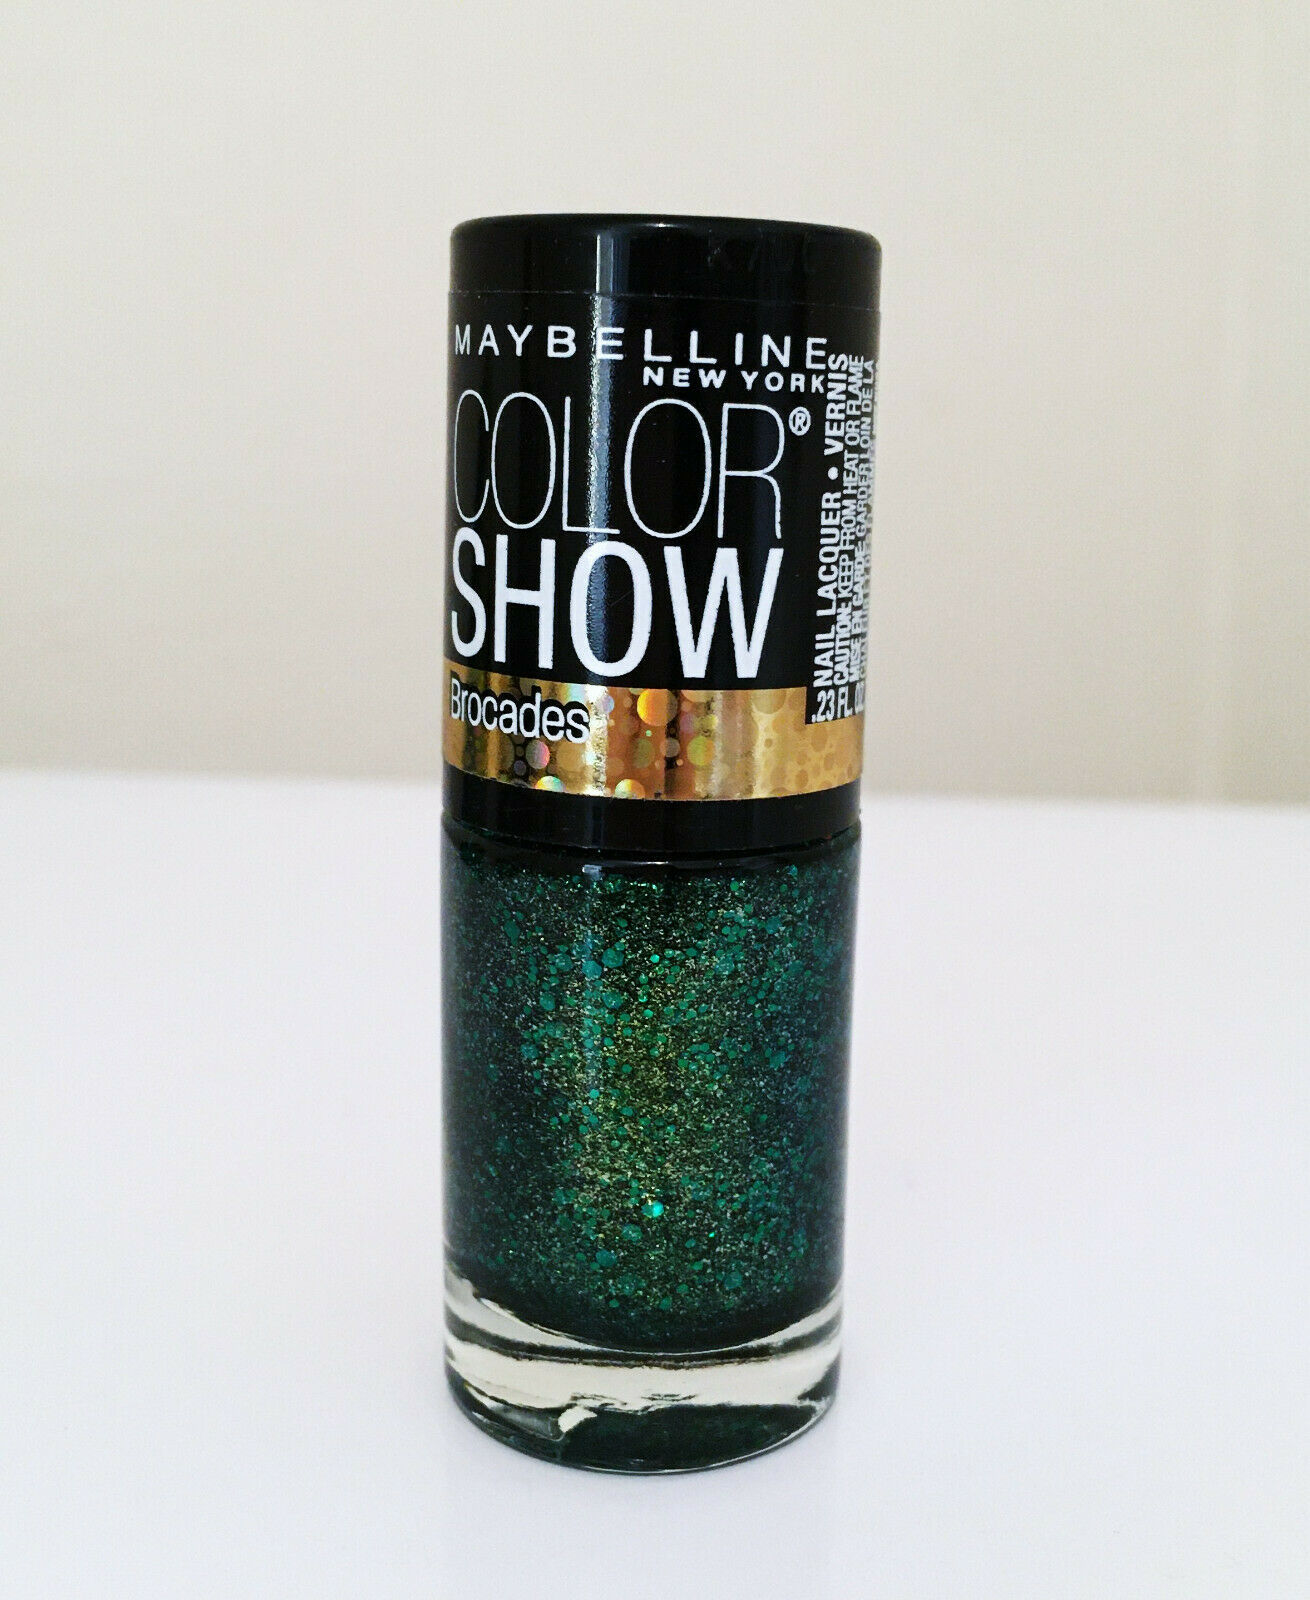 Maybelline Color Show Brocades Nail Lacquer Limited Edition 790 Emerald Elegance - $7.22